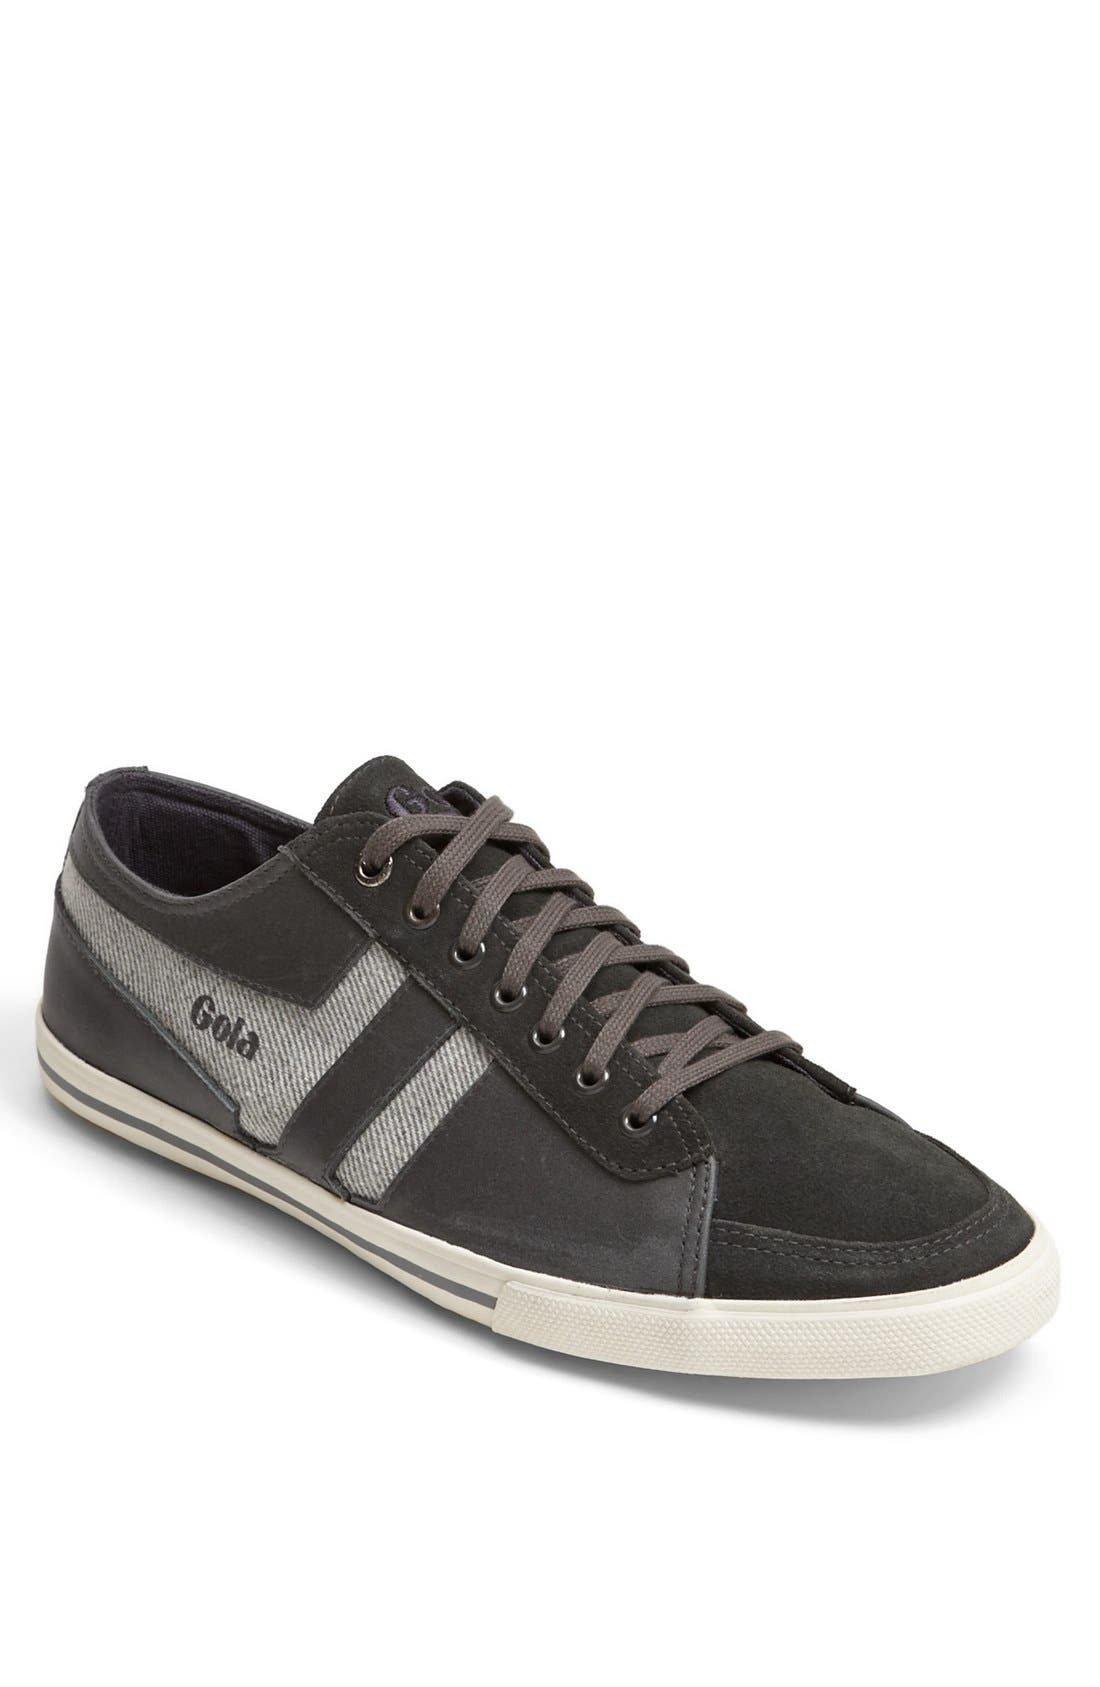 'Quota - Underlay' Sneaker, Main, color, 060